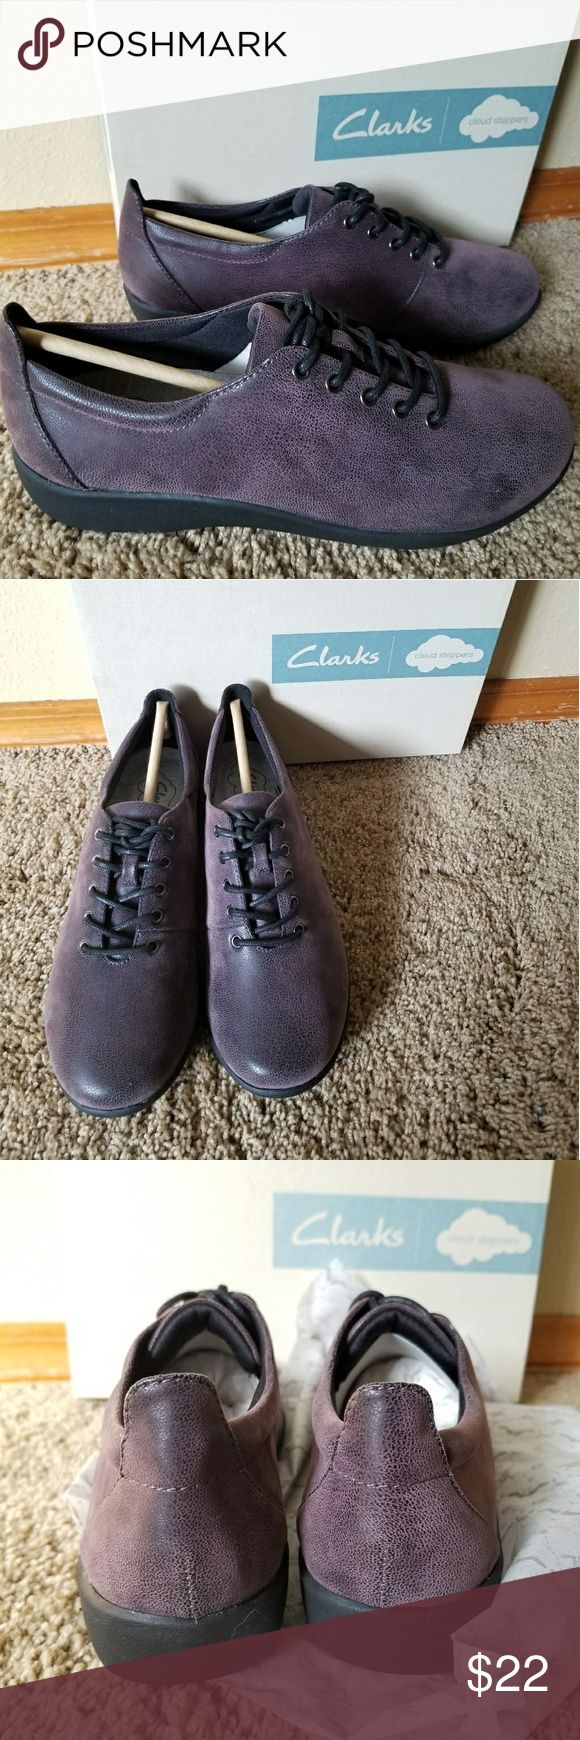 """NWT Clarks Sillian Tino women's shoes 7 Brand new in box and original packaging, never been worn. Clarks Sillian Tino womens shoes, size 7. No scuffs, no marks. Beautiful grayish purple color. Super soft and the box says """"cloud steppers."""" Clarks Shoes Flats & Loafers"""